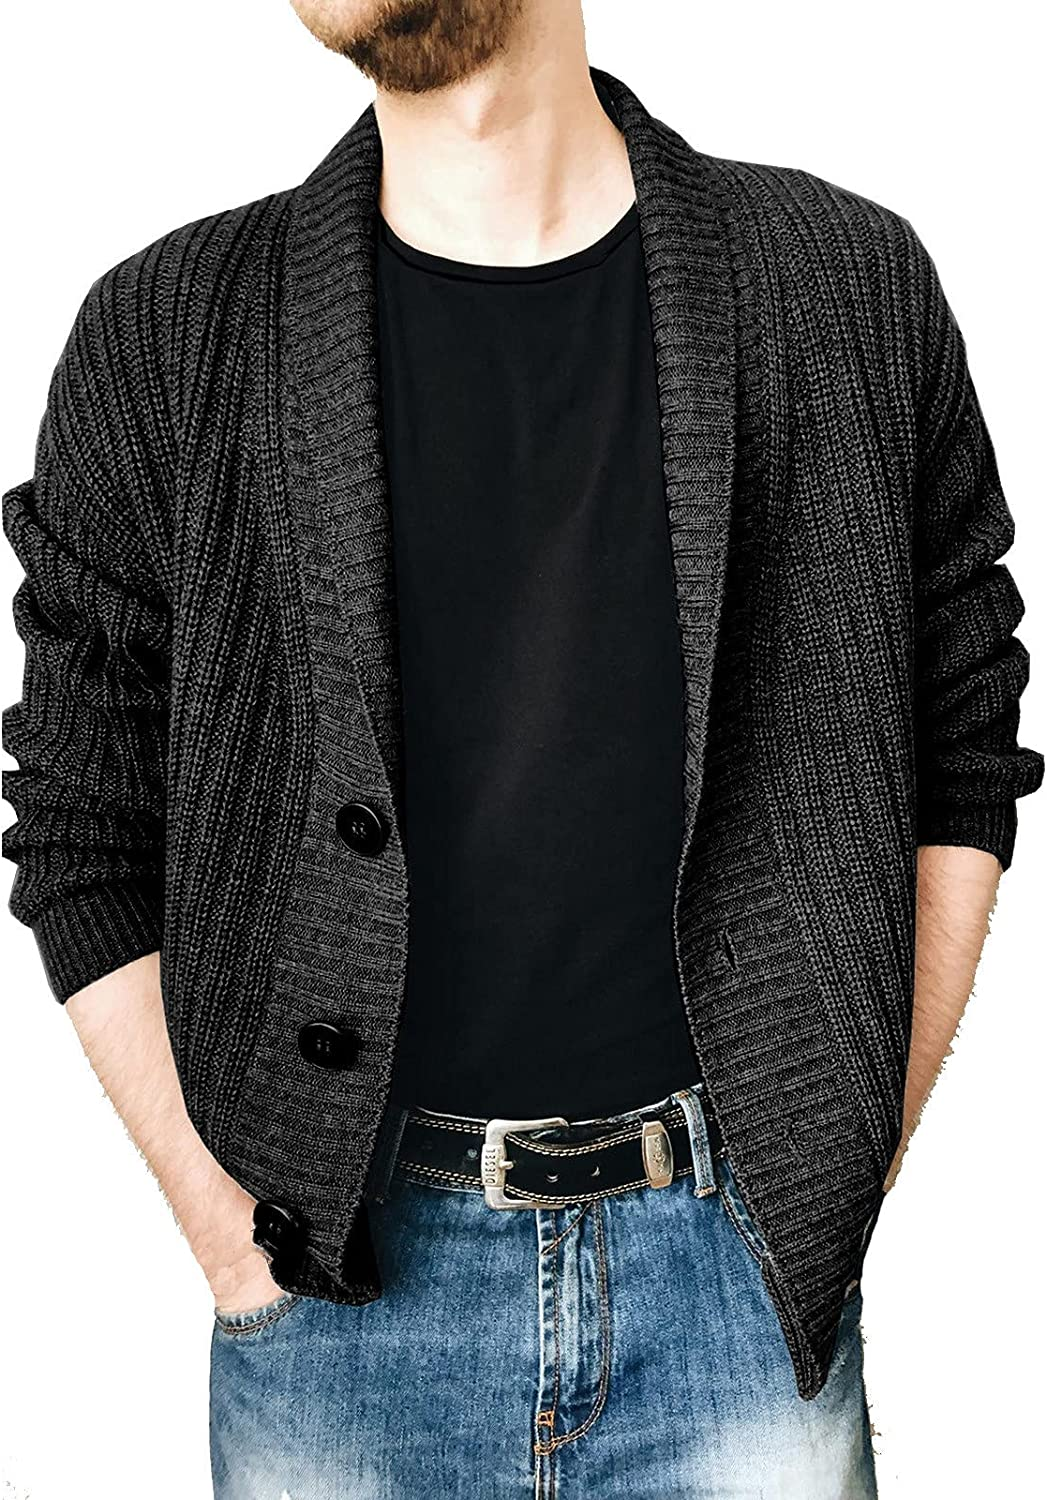 Men's Knitted Cardigan Fashion Solid Color Lapel Long-Sleeved Single Breasted Sweater Coat Henley Sweater Jacket